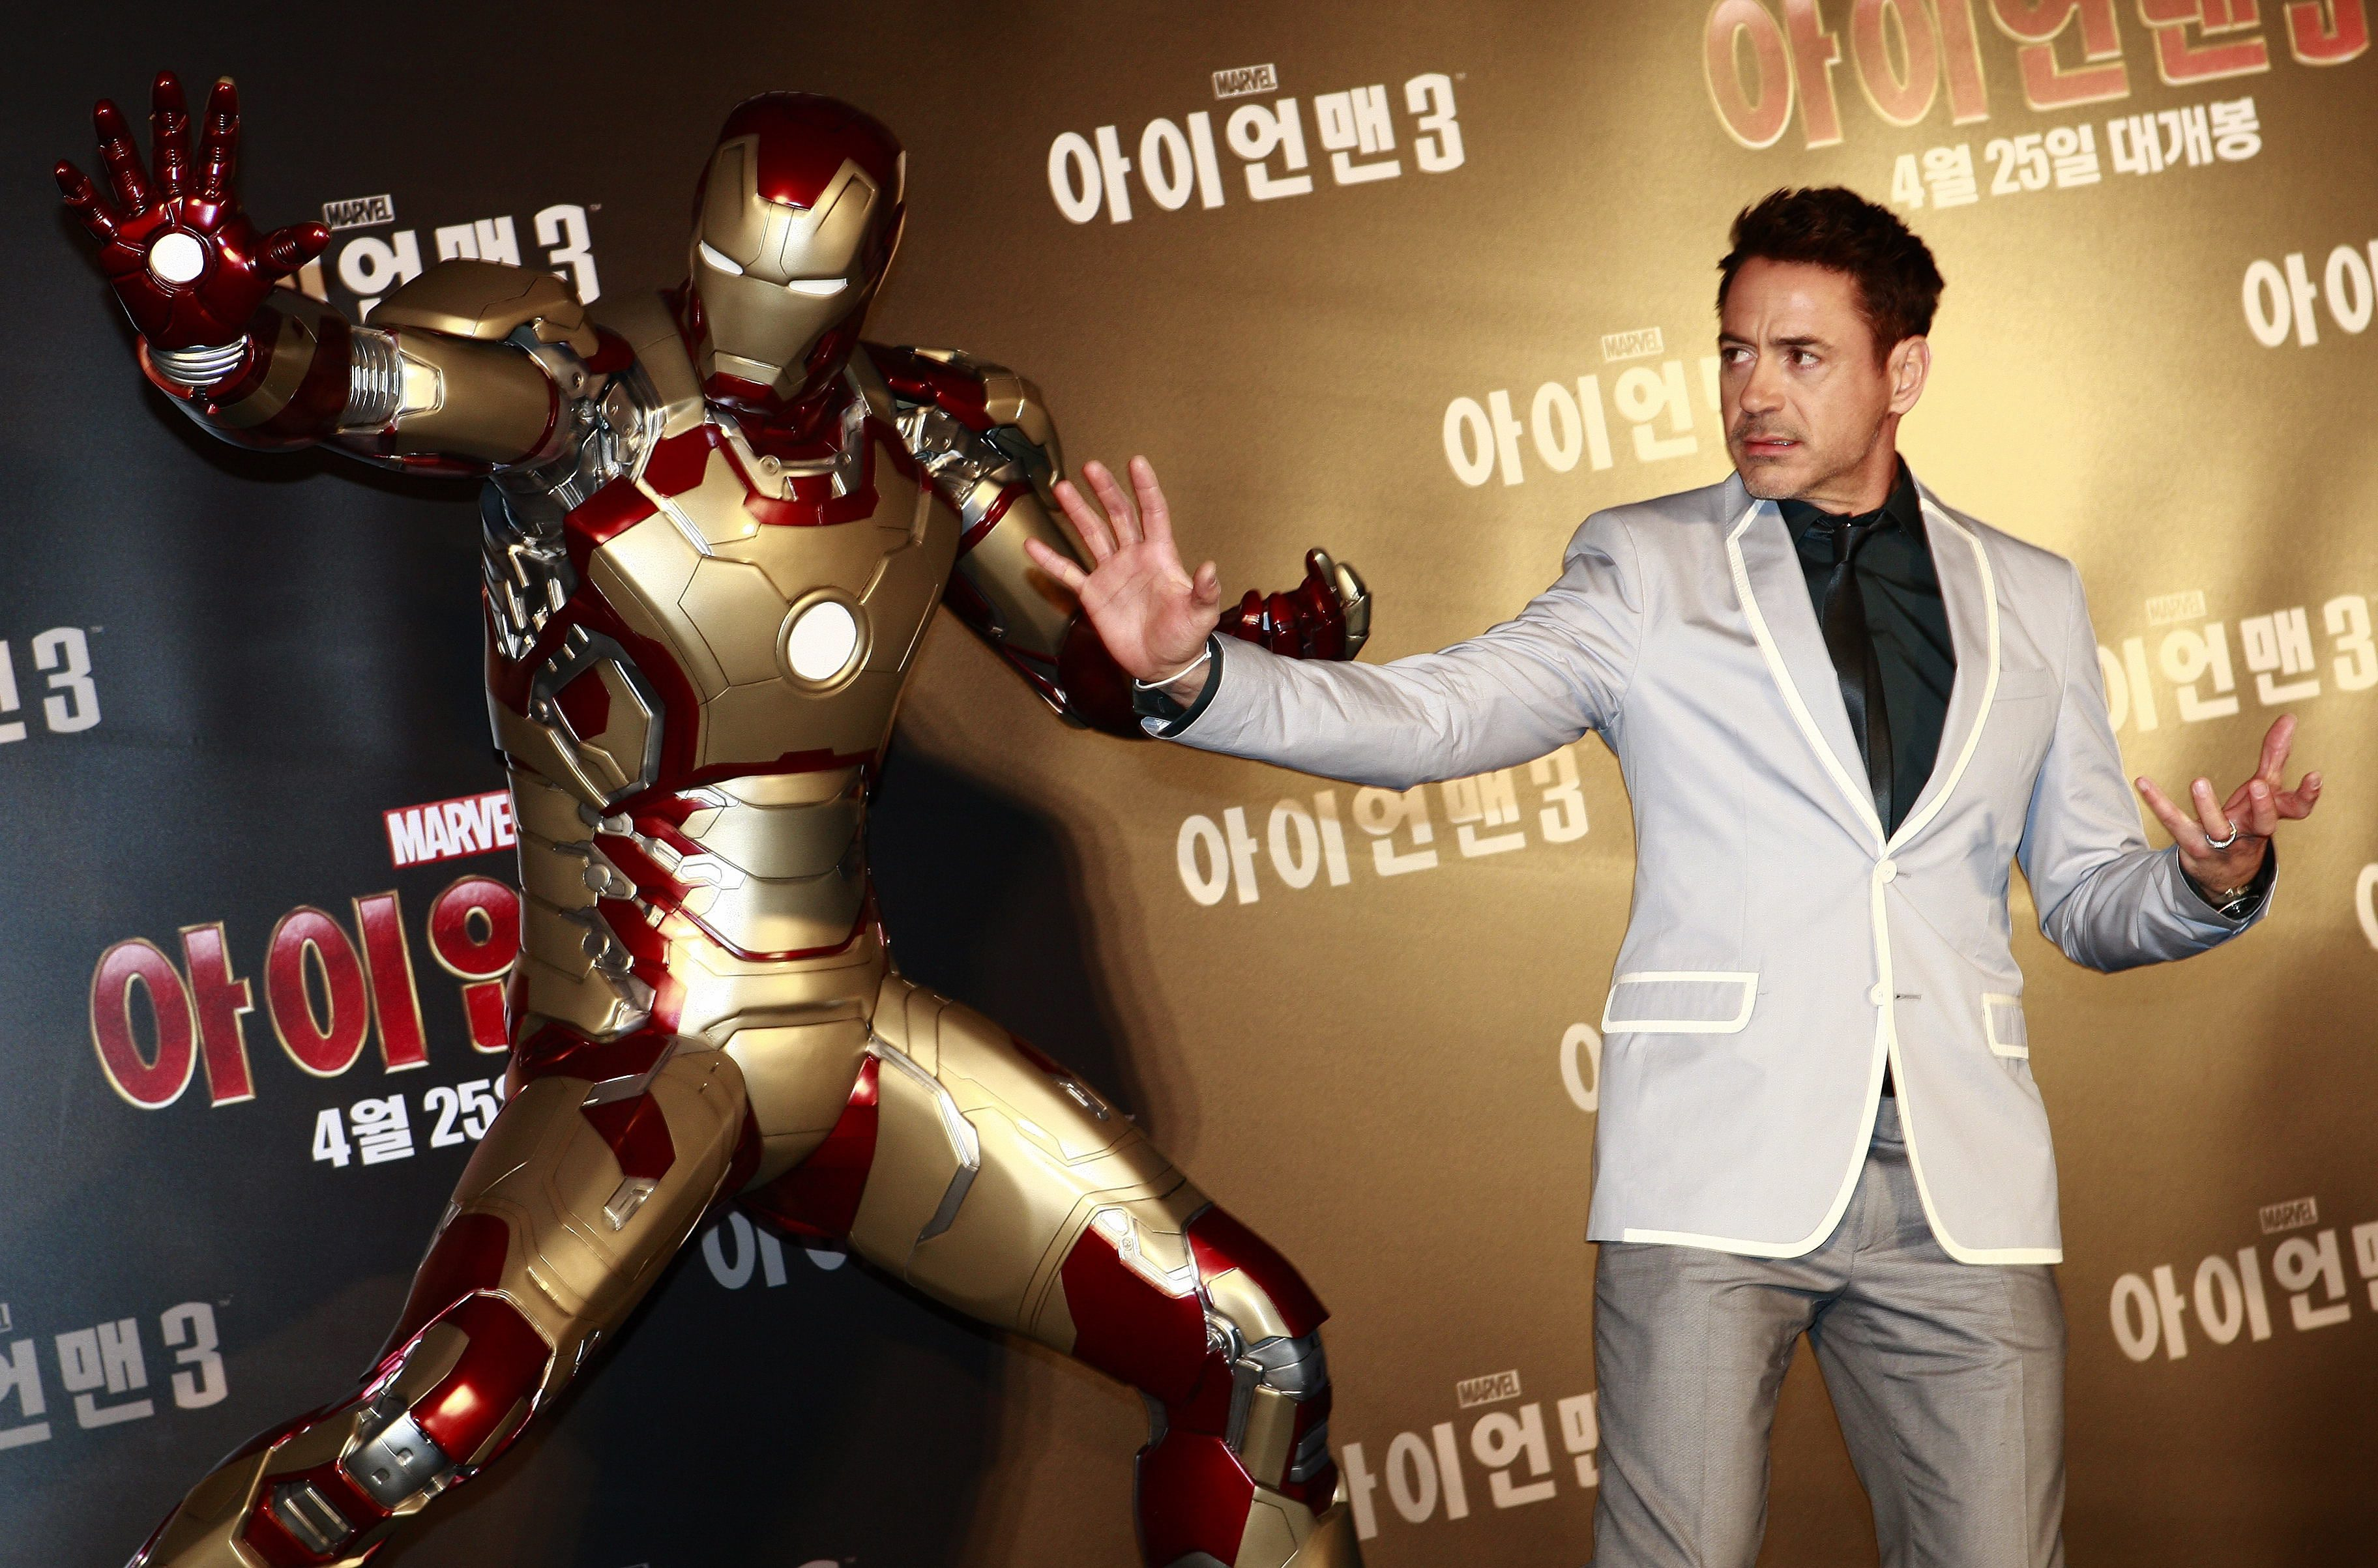 Robert Downey Jr 'wants Mel Gibson and Jodie Foster in next Avengers film'